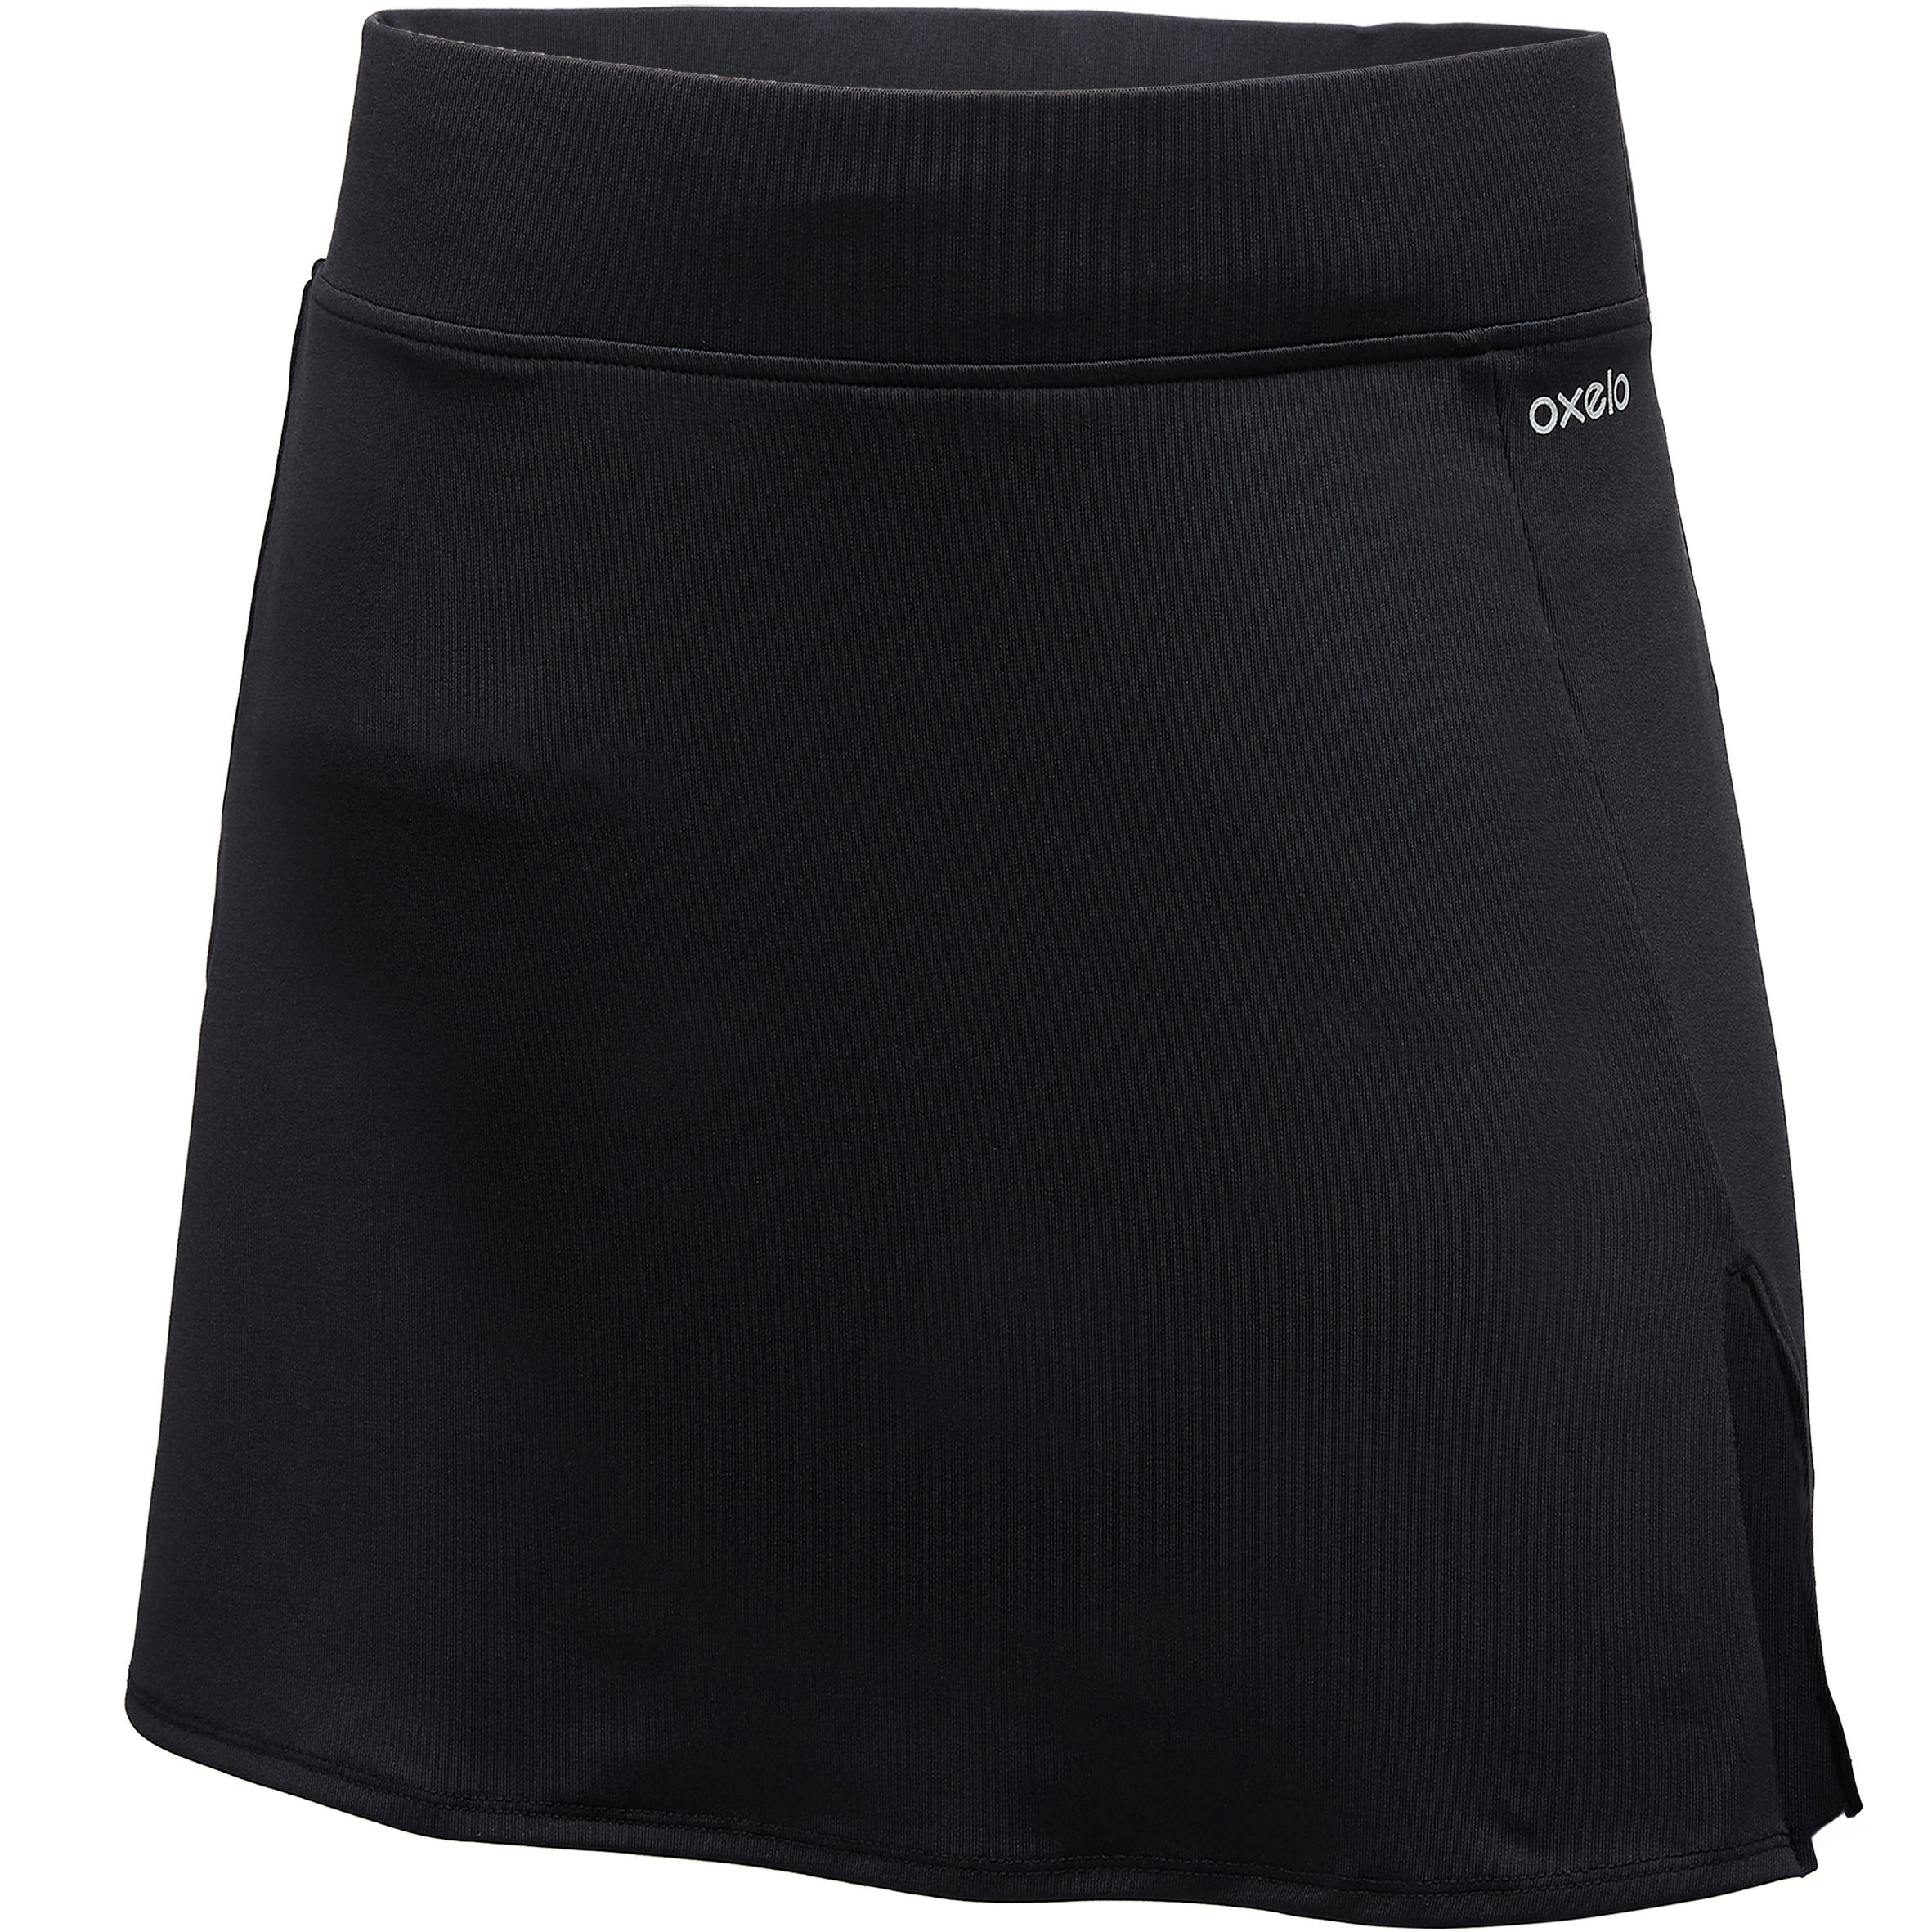 Adult Figure Skating Skirt - Black